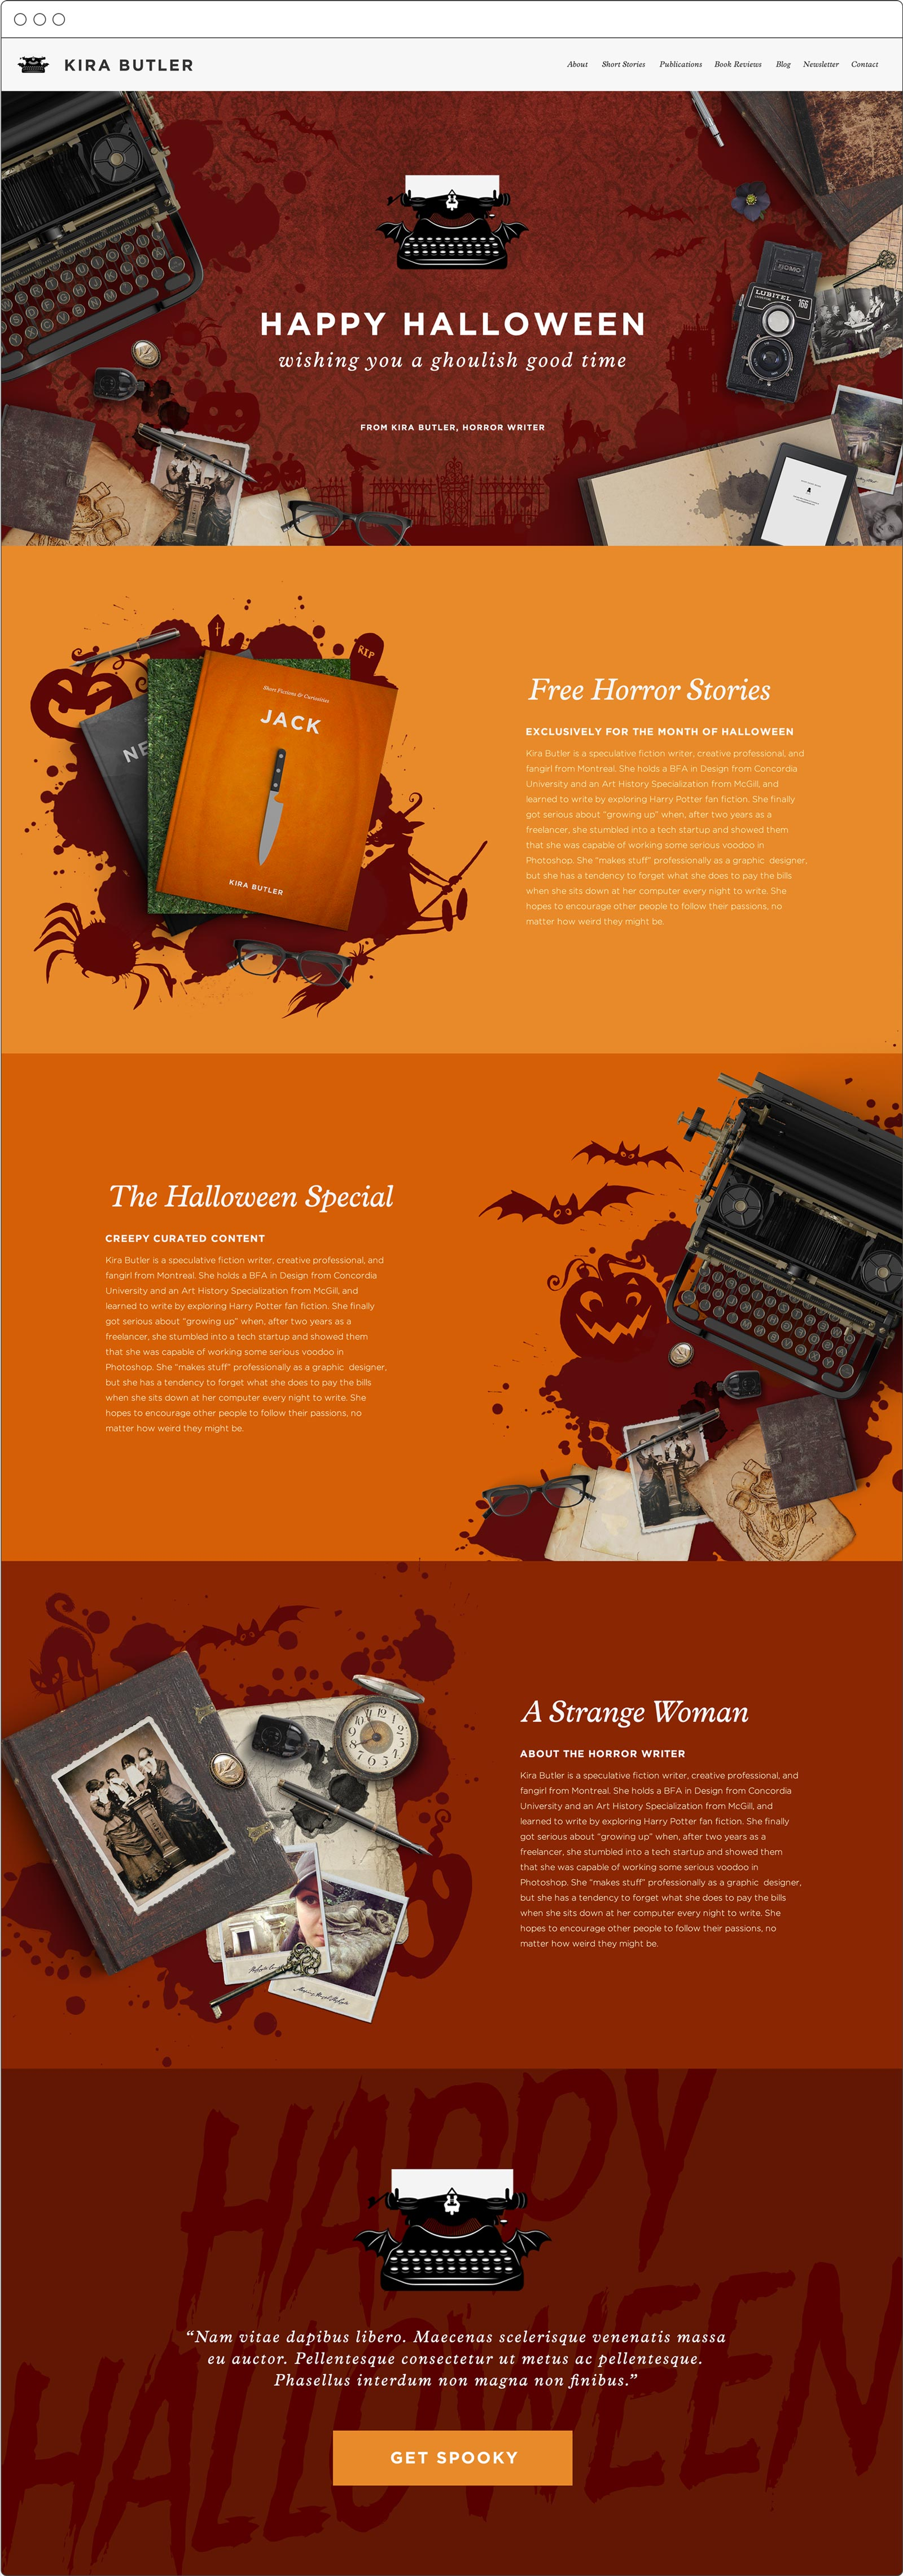 Website Design for KiraButler.com's Halloween Horror Special, YA Author